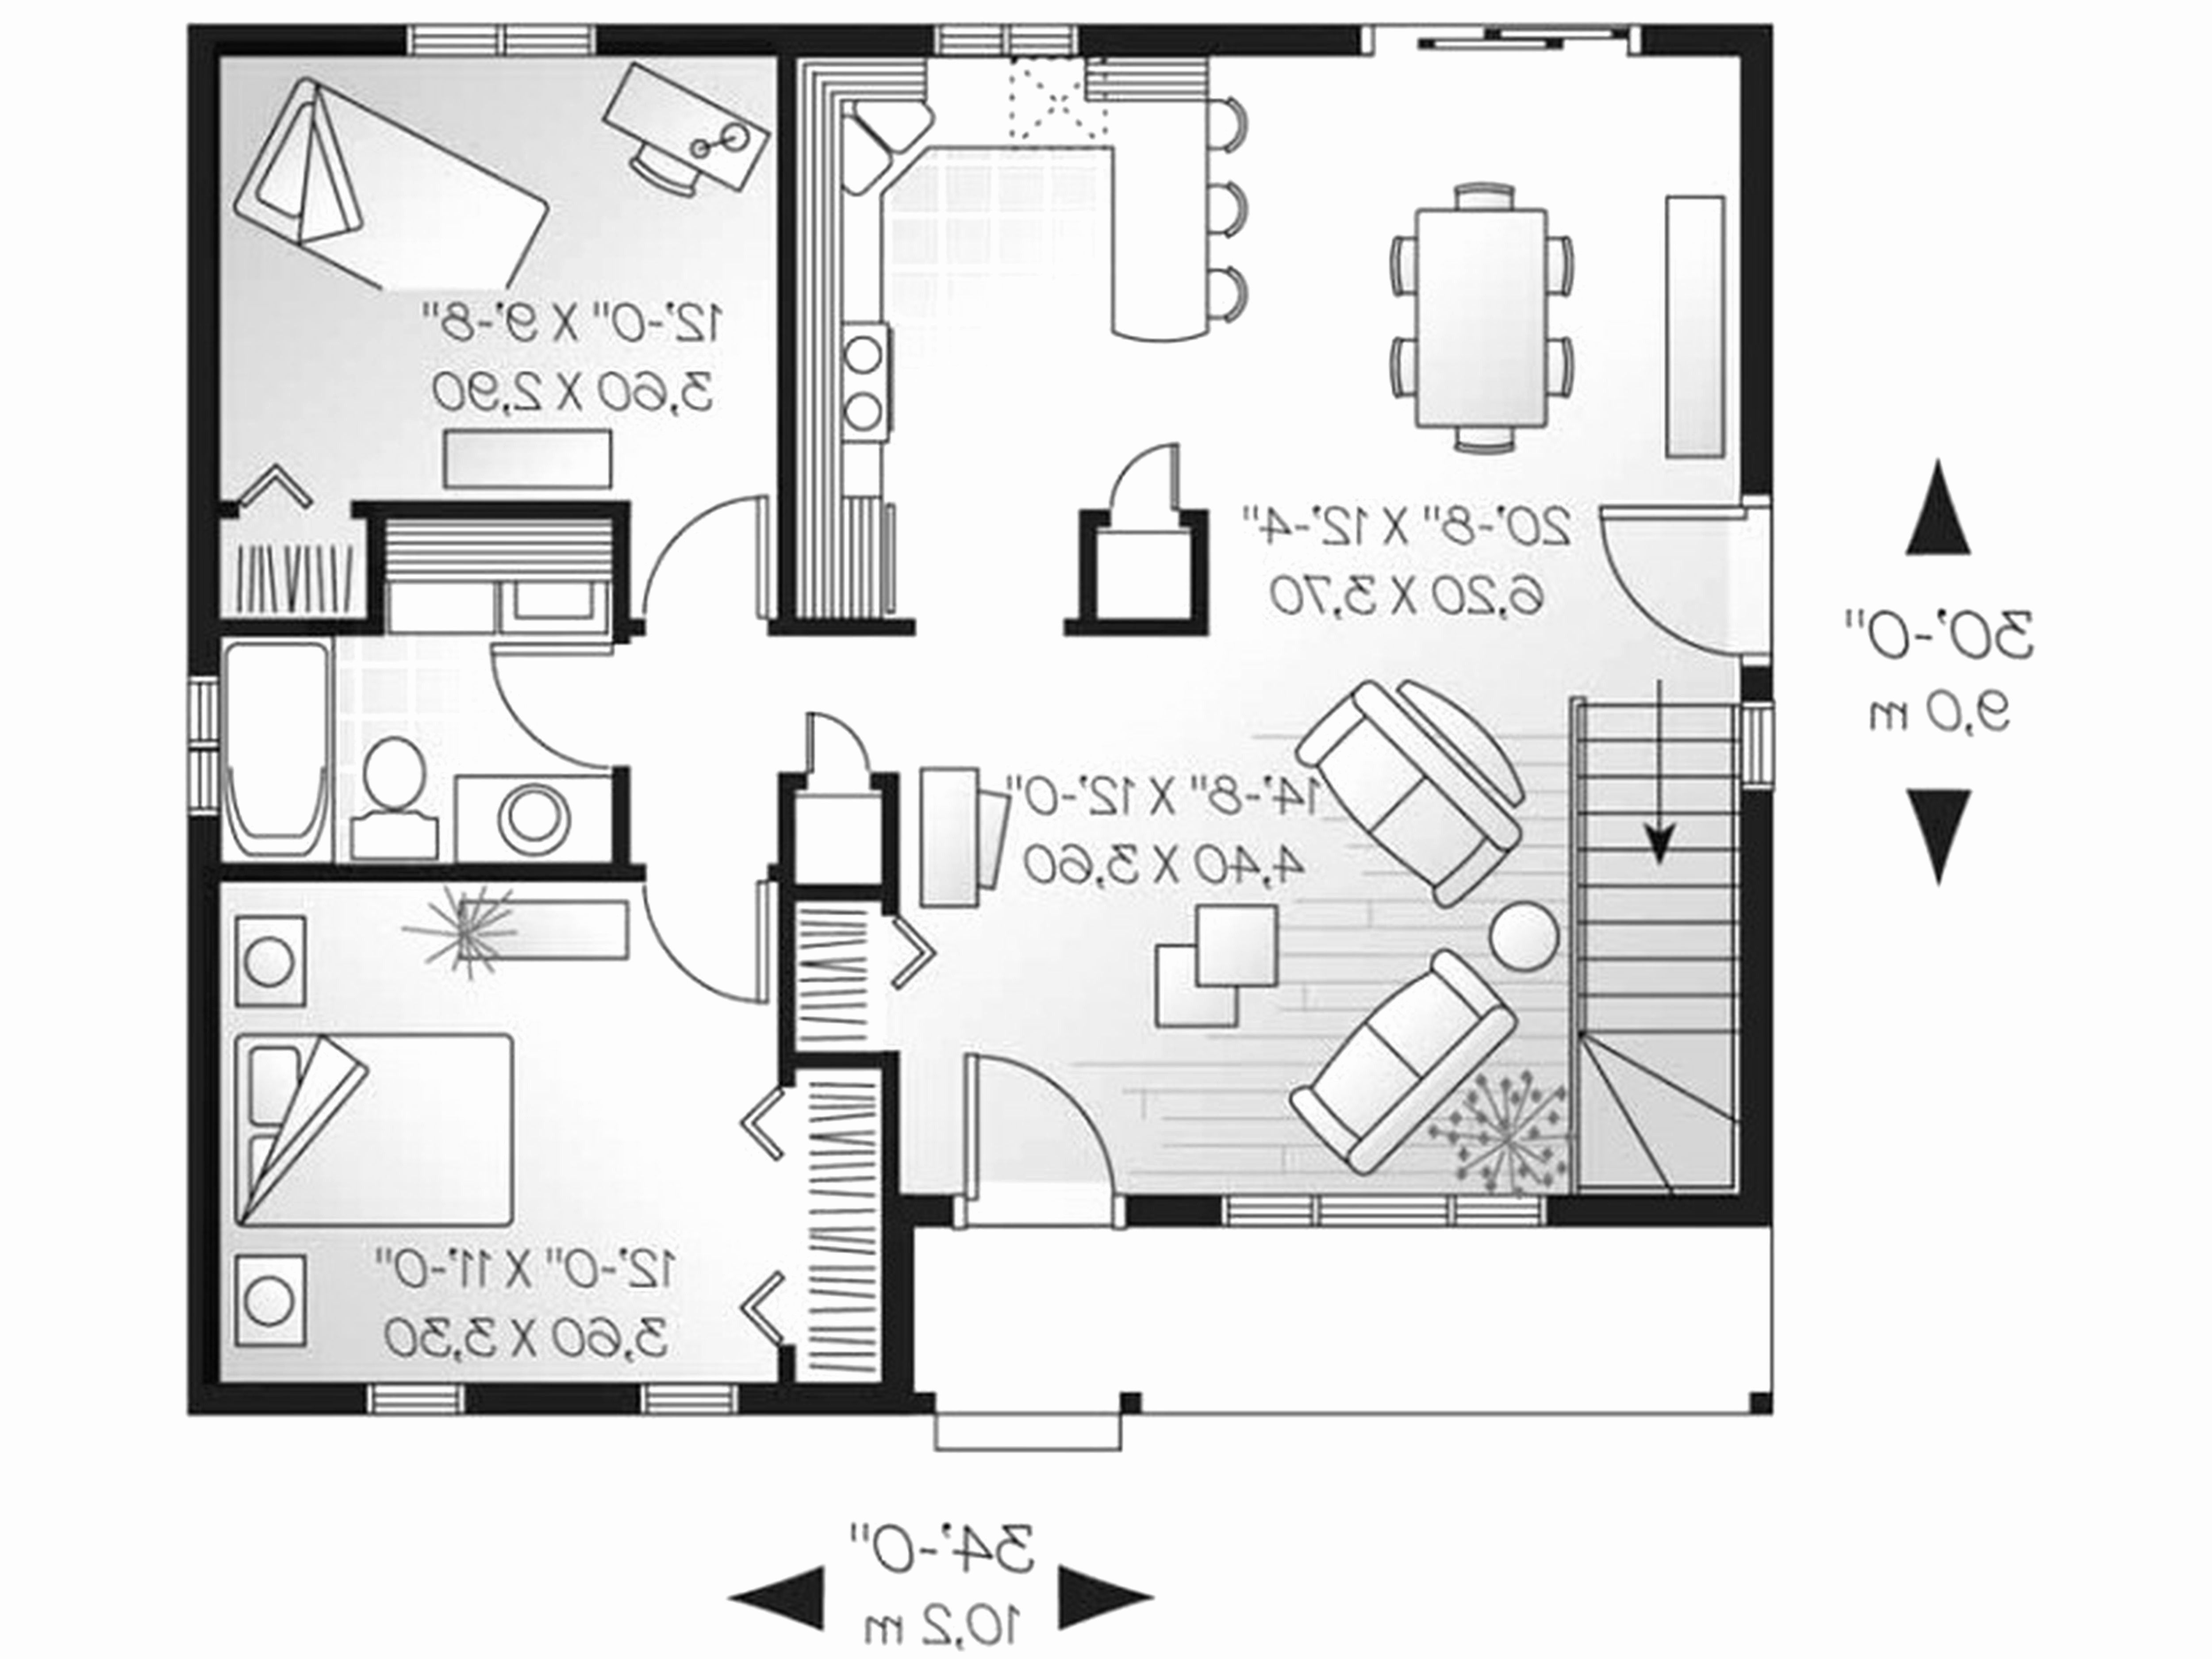 10 best of small house plans under 1000 sq ft check more on best tiny house plan design ideas id=31636